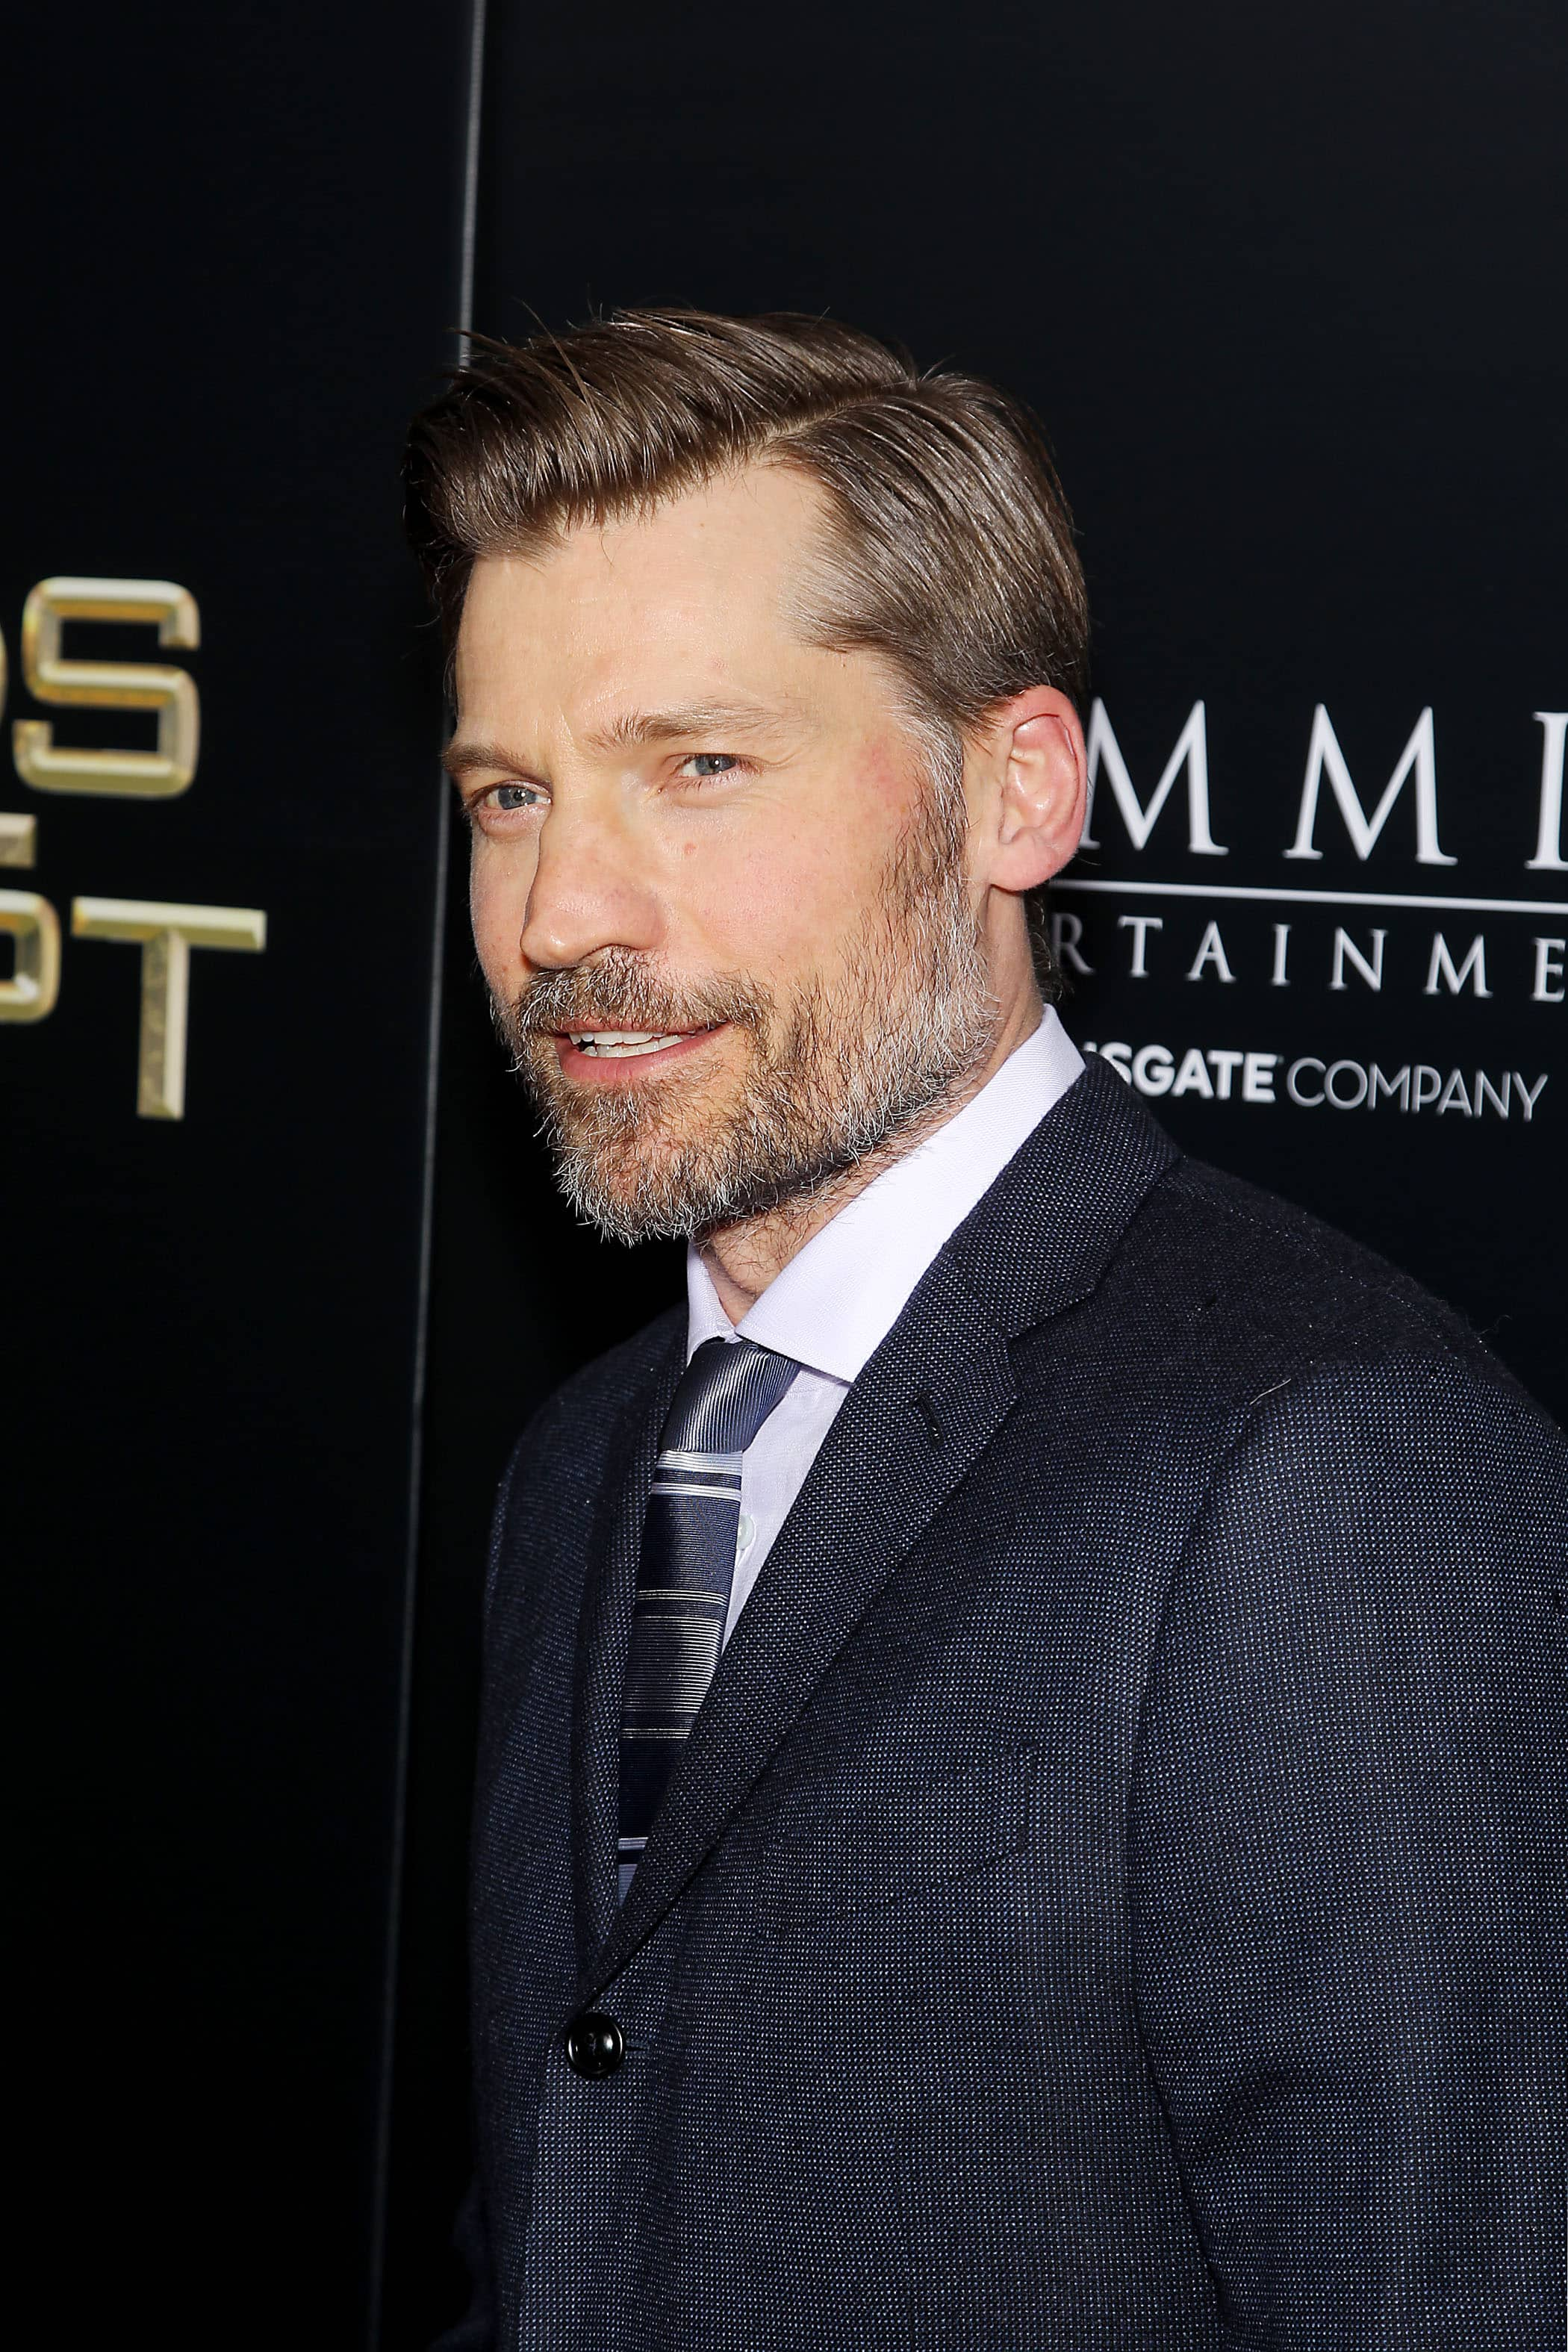 """- New York, NY - 2/24/16 - Summit Entertainment - A Lionsgate Company Presents the New York Premiere of """"Gods of Egypt"""" -PICTURED: Nikolaj Coster-Waldau -PHOTO by: Marion Curtis/StarPix -FILENAME: MC_16_01084031.JPG -LOCATION: AMC Lowes Lincoln Square 13 Startraks Photo New York,  NY For licensing please call 212-414-9464  or email sales@startraksphoto.com Image may not be published in any way that is or might be deemed defamatory, libelous, pornographic, or obscene. Please consult our sales department for any clarification or question you may have. Startraks Photo reserves the right to pursue unauthorized users of this image. If you violate our intellectual property you may be liable for actual damages, loss of income, and profits you derive from the use of this image, and where appropriate, the cost of collection and/or statutory damages."""